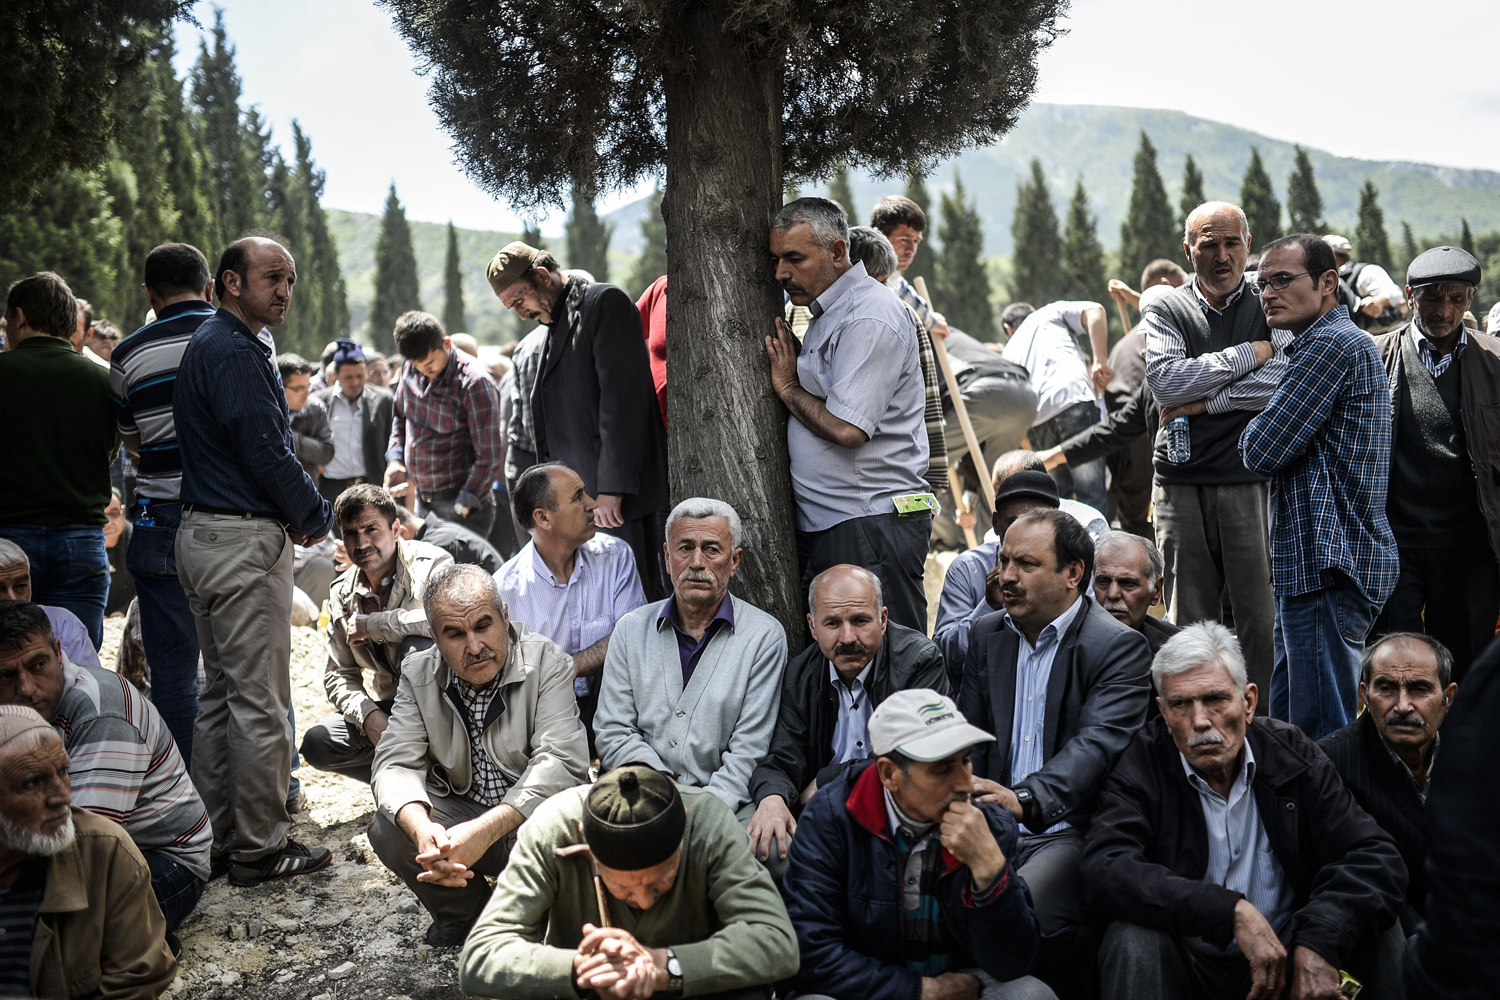 May 15, 2014. People mourn in a cemetery during the funeral ceremony of miners who died in an explosion on  in the western town of Soma in Manisa, Turkey.